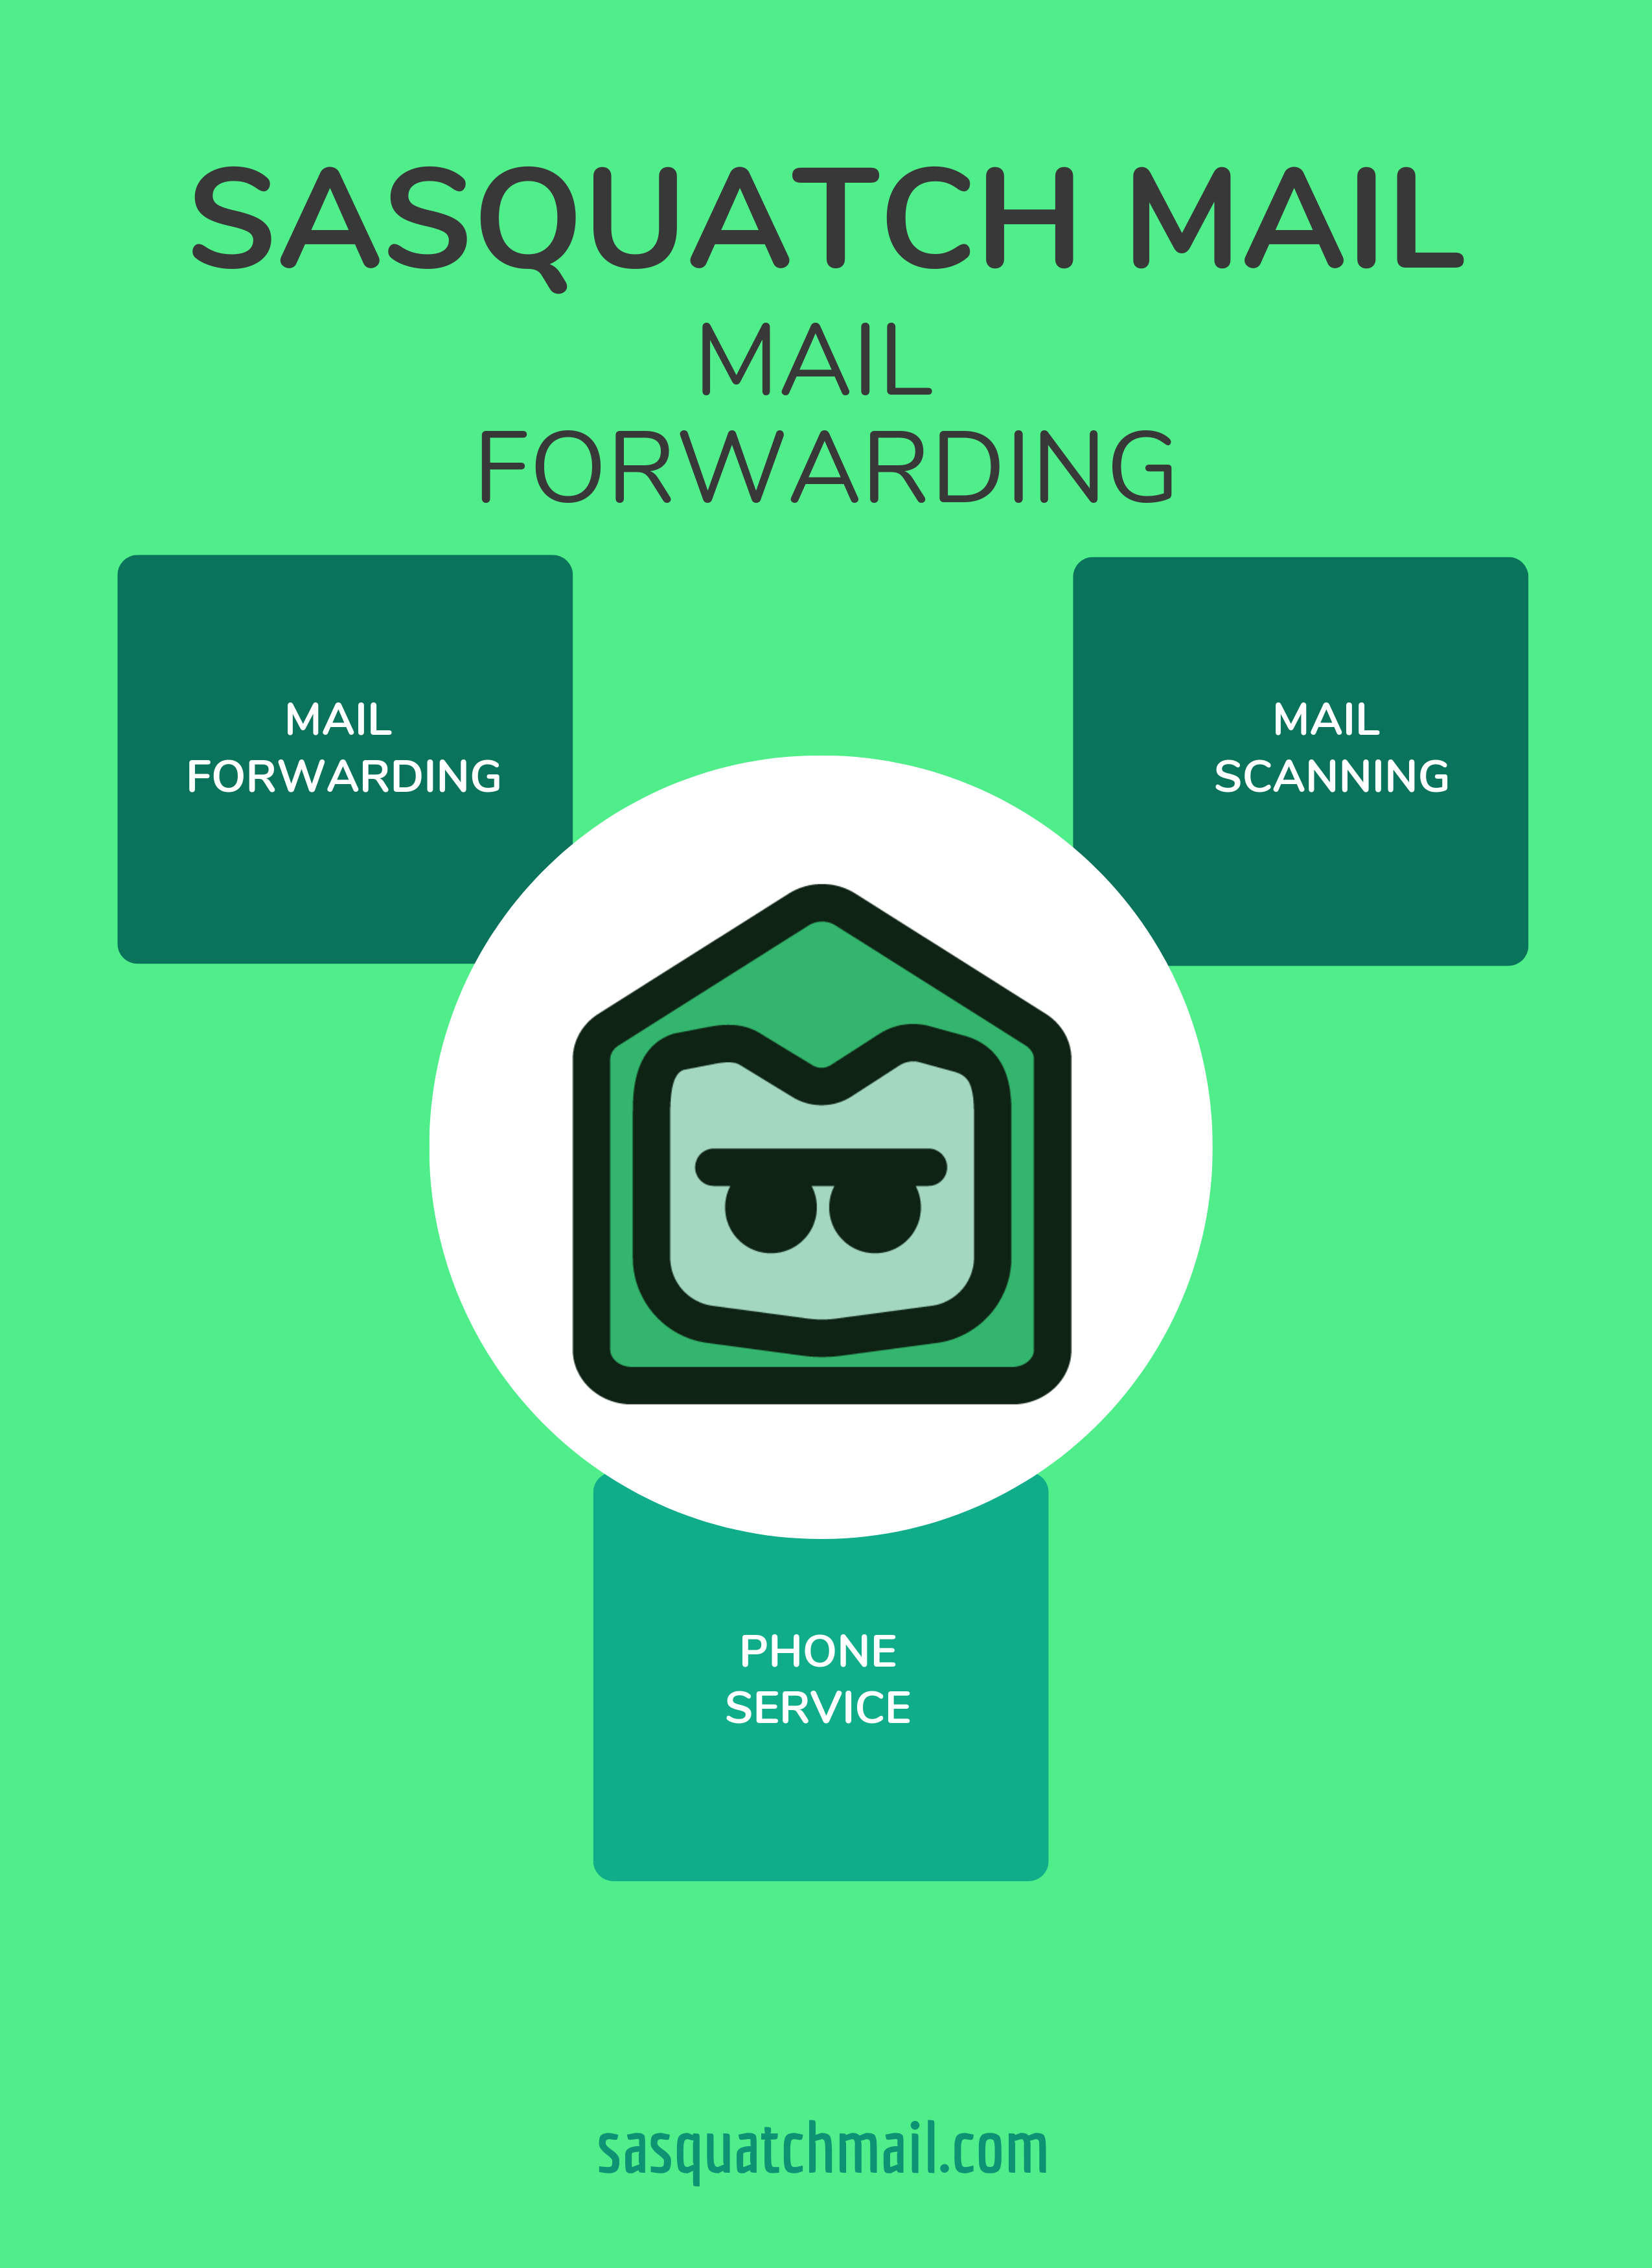 Mail Forwarding Services and Phone Available | Sasquatch